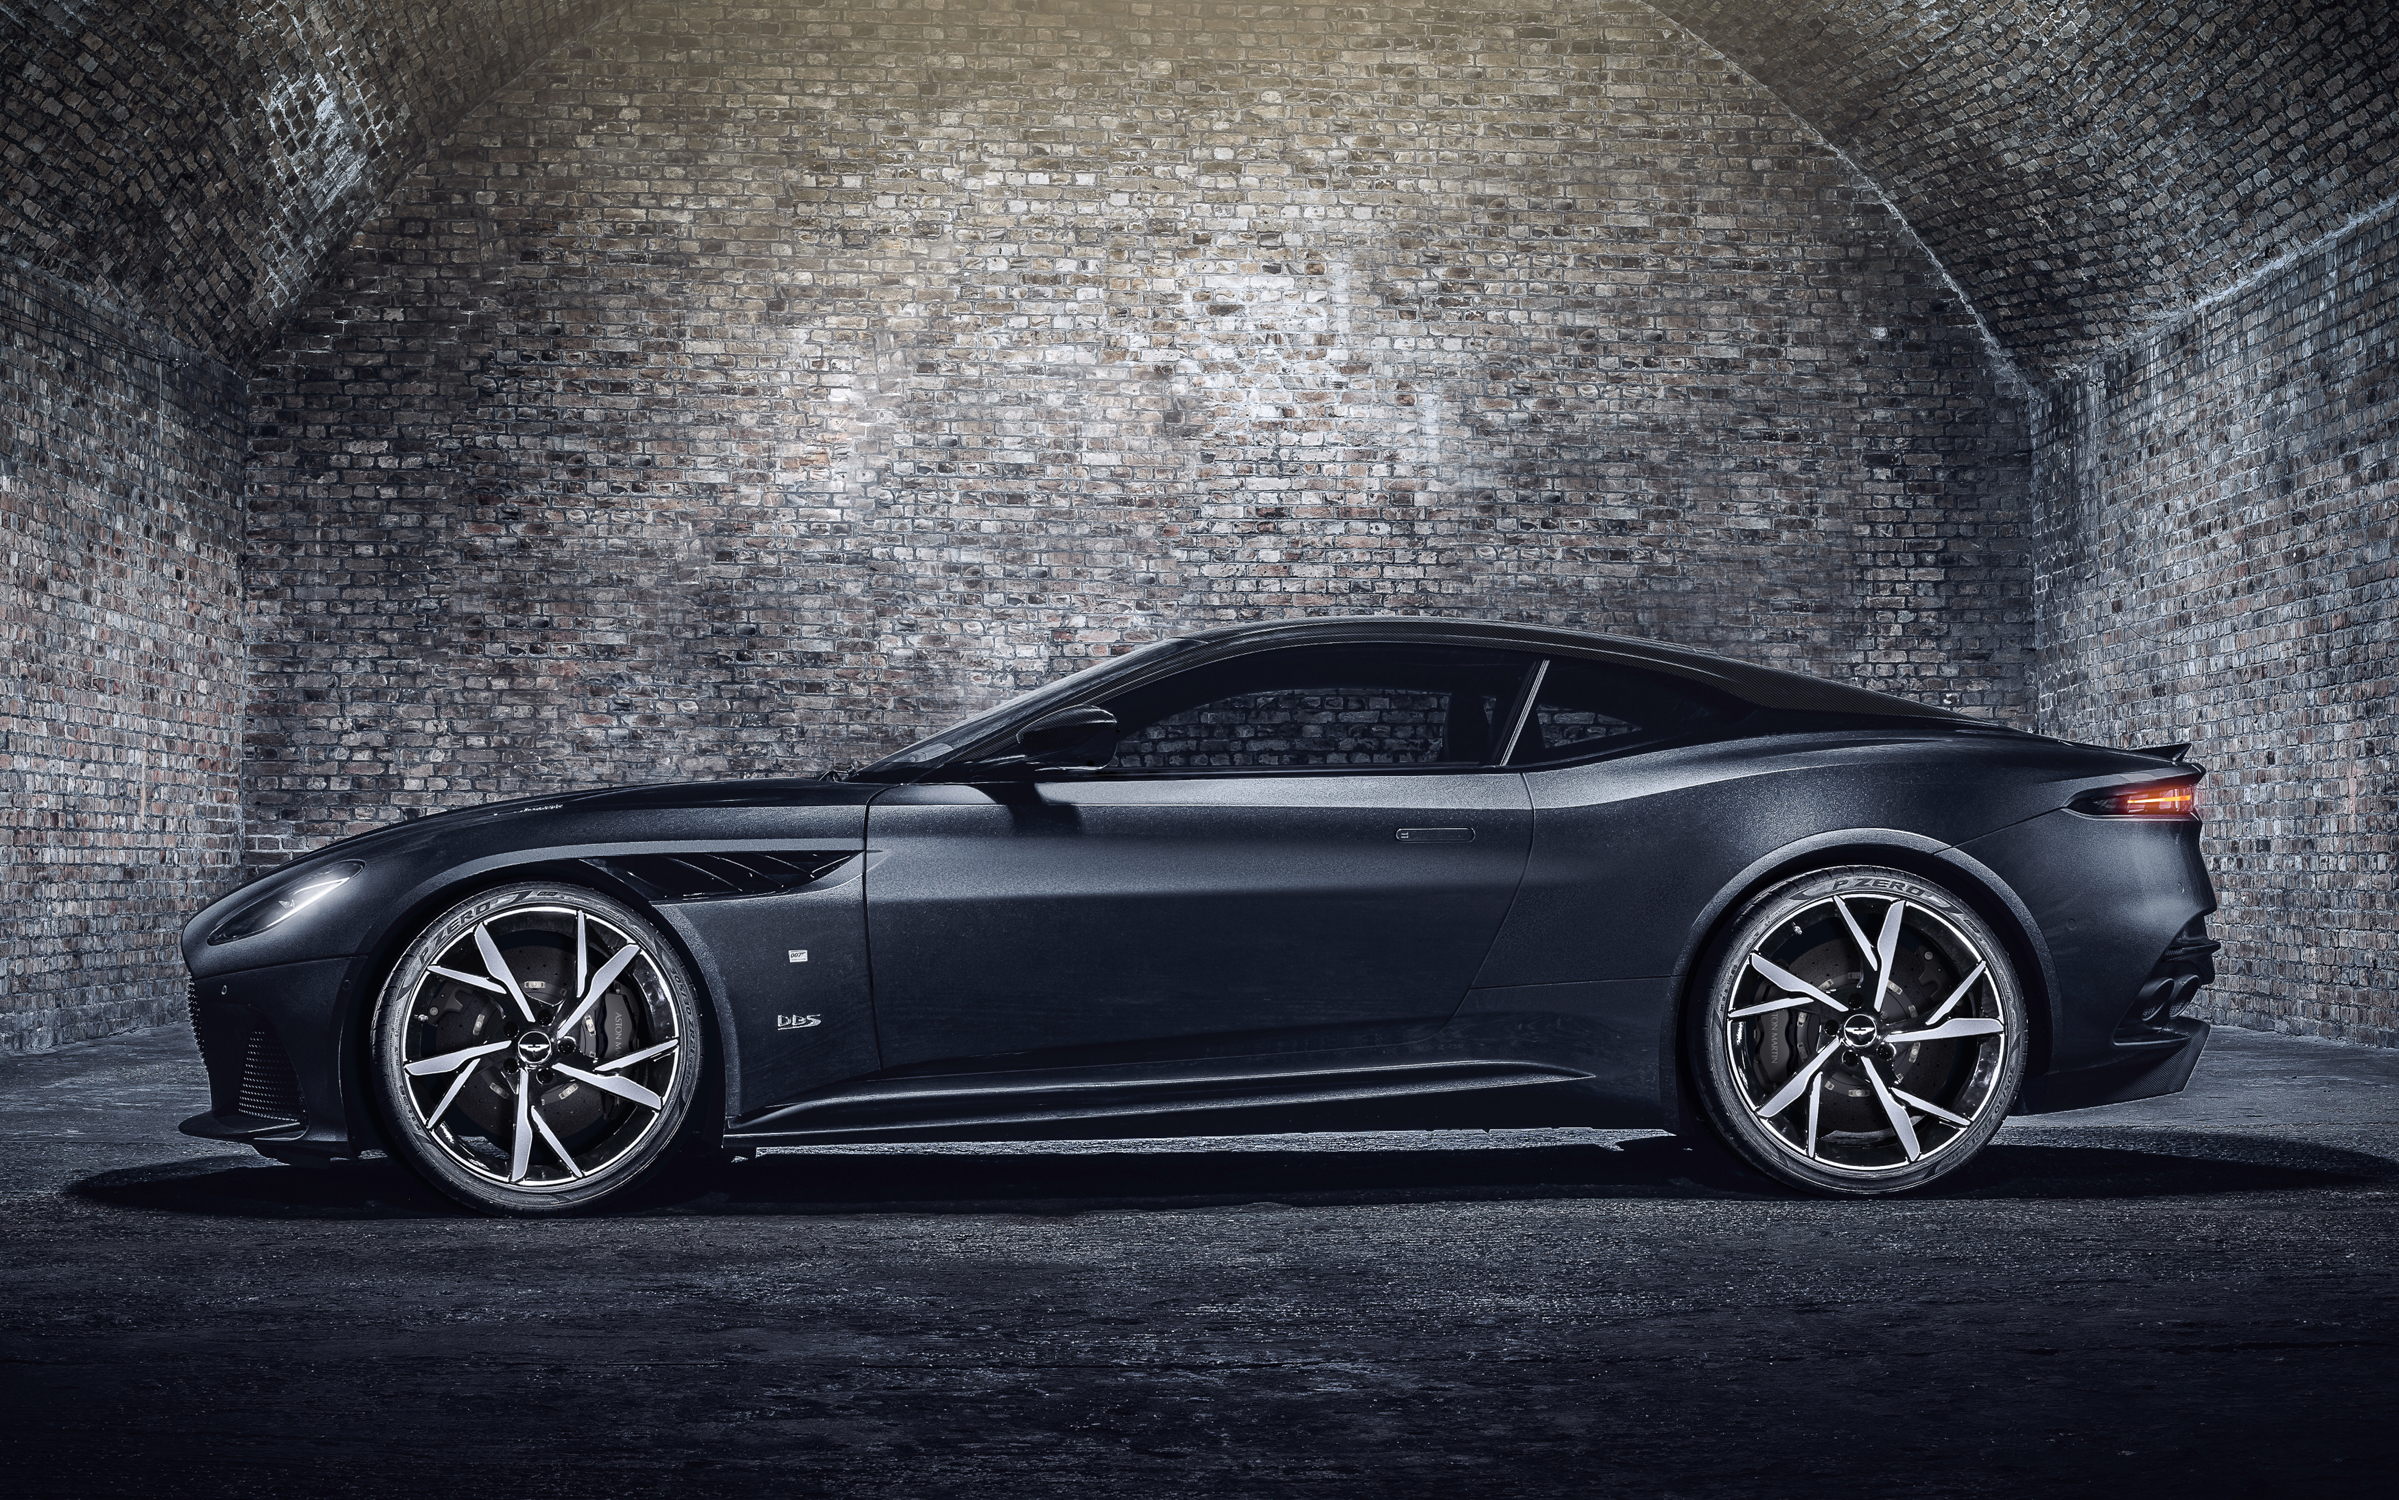 Aston Martin DBS Superleggera 007 Edition